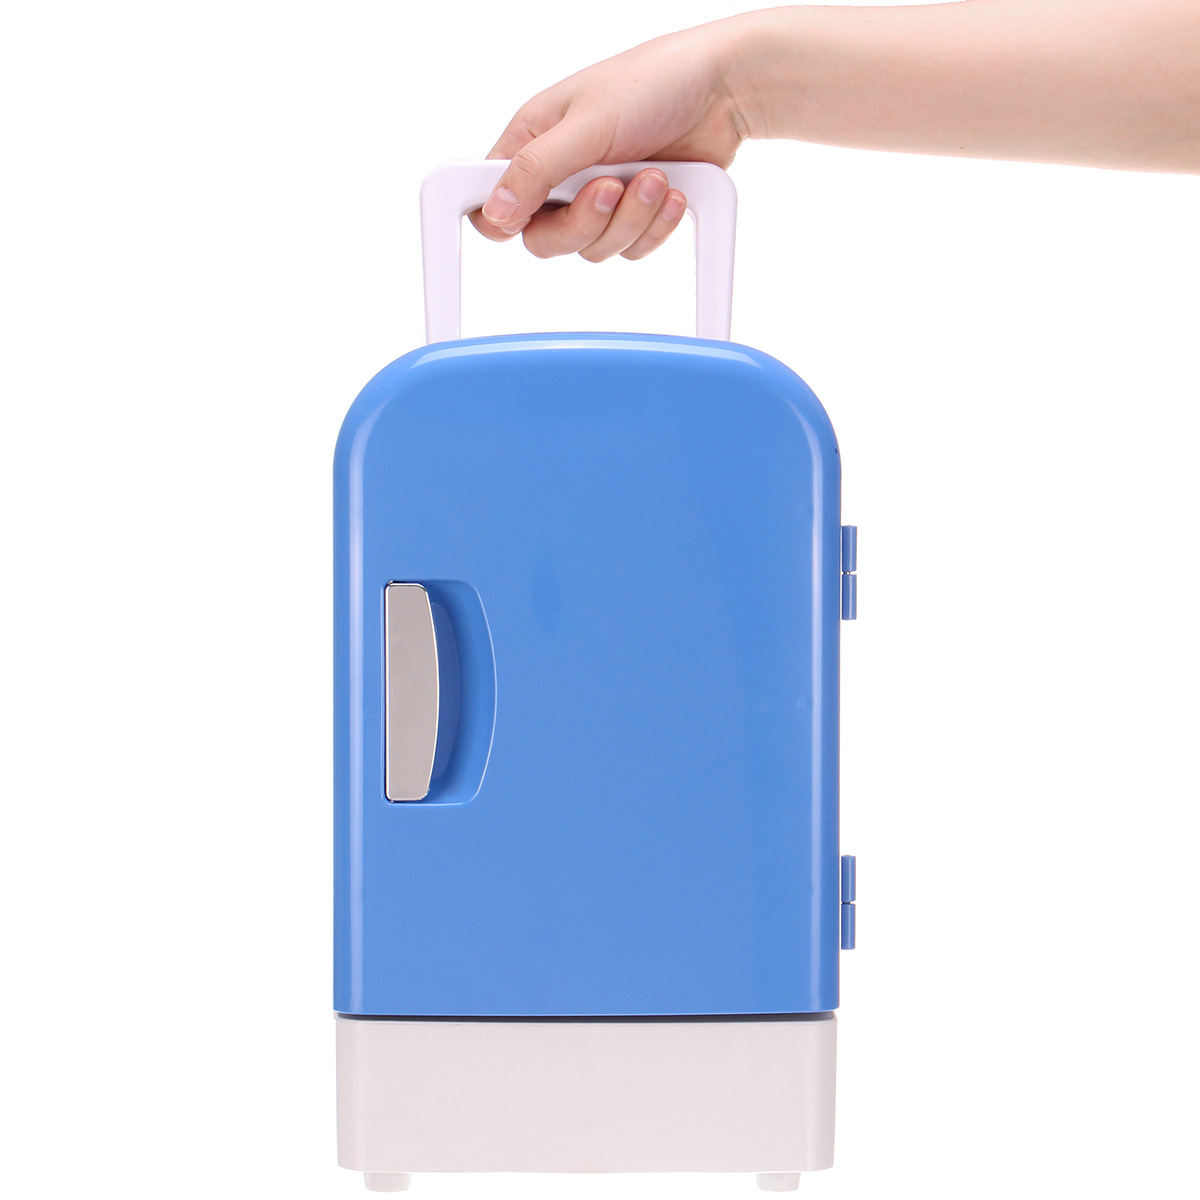 DC 12V Portable Mini Home Car 4L Dual-use Semiconductor Insulation Refrigerator Low Noise Freezer Cooling Heating Box Fridge